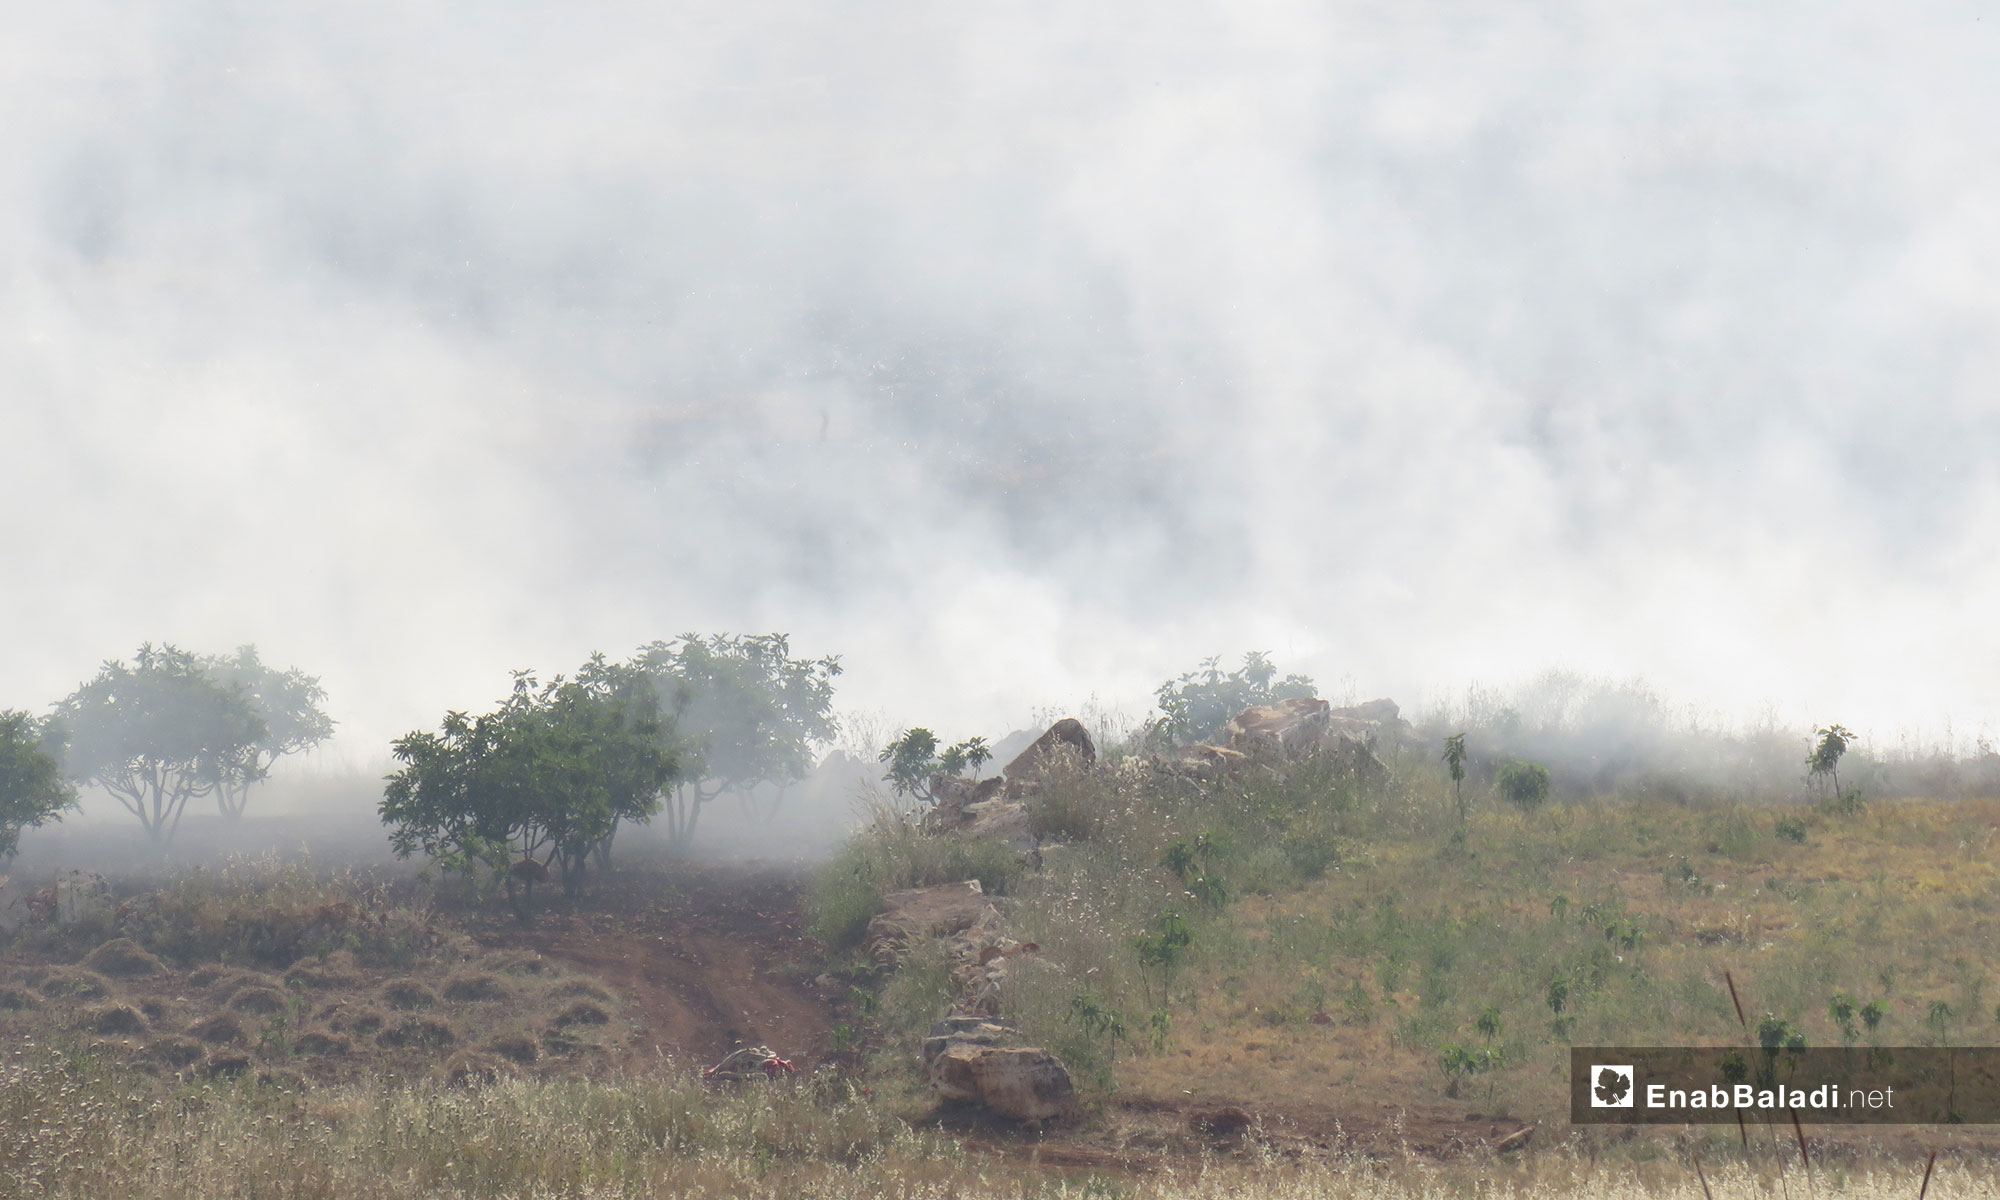 Crops caught fire in the town of Tramla, southern Idlib, after the area was targeted by rocket launchers – May 14, 2019 (Enab Baladi)